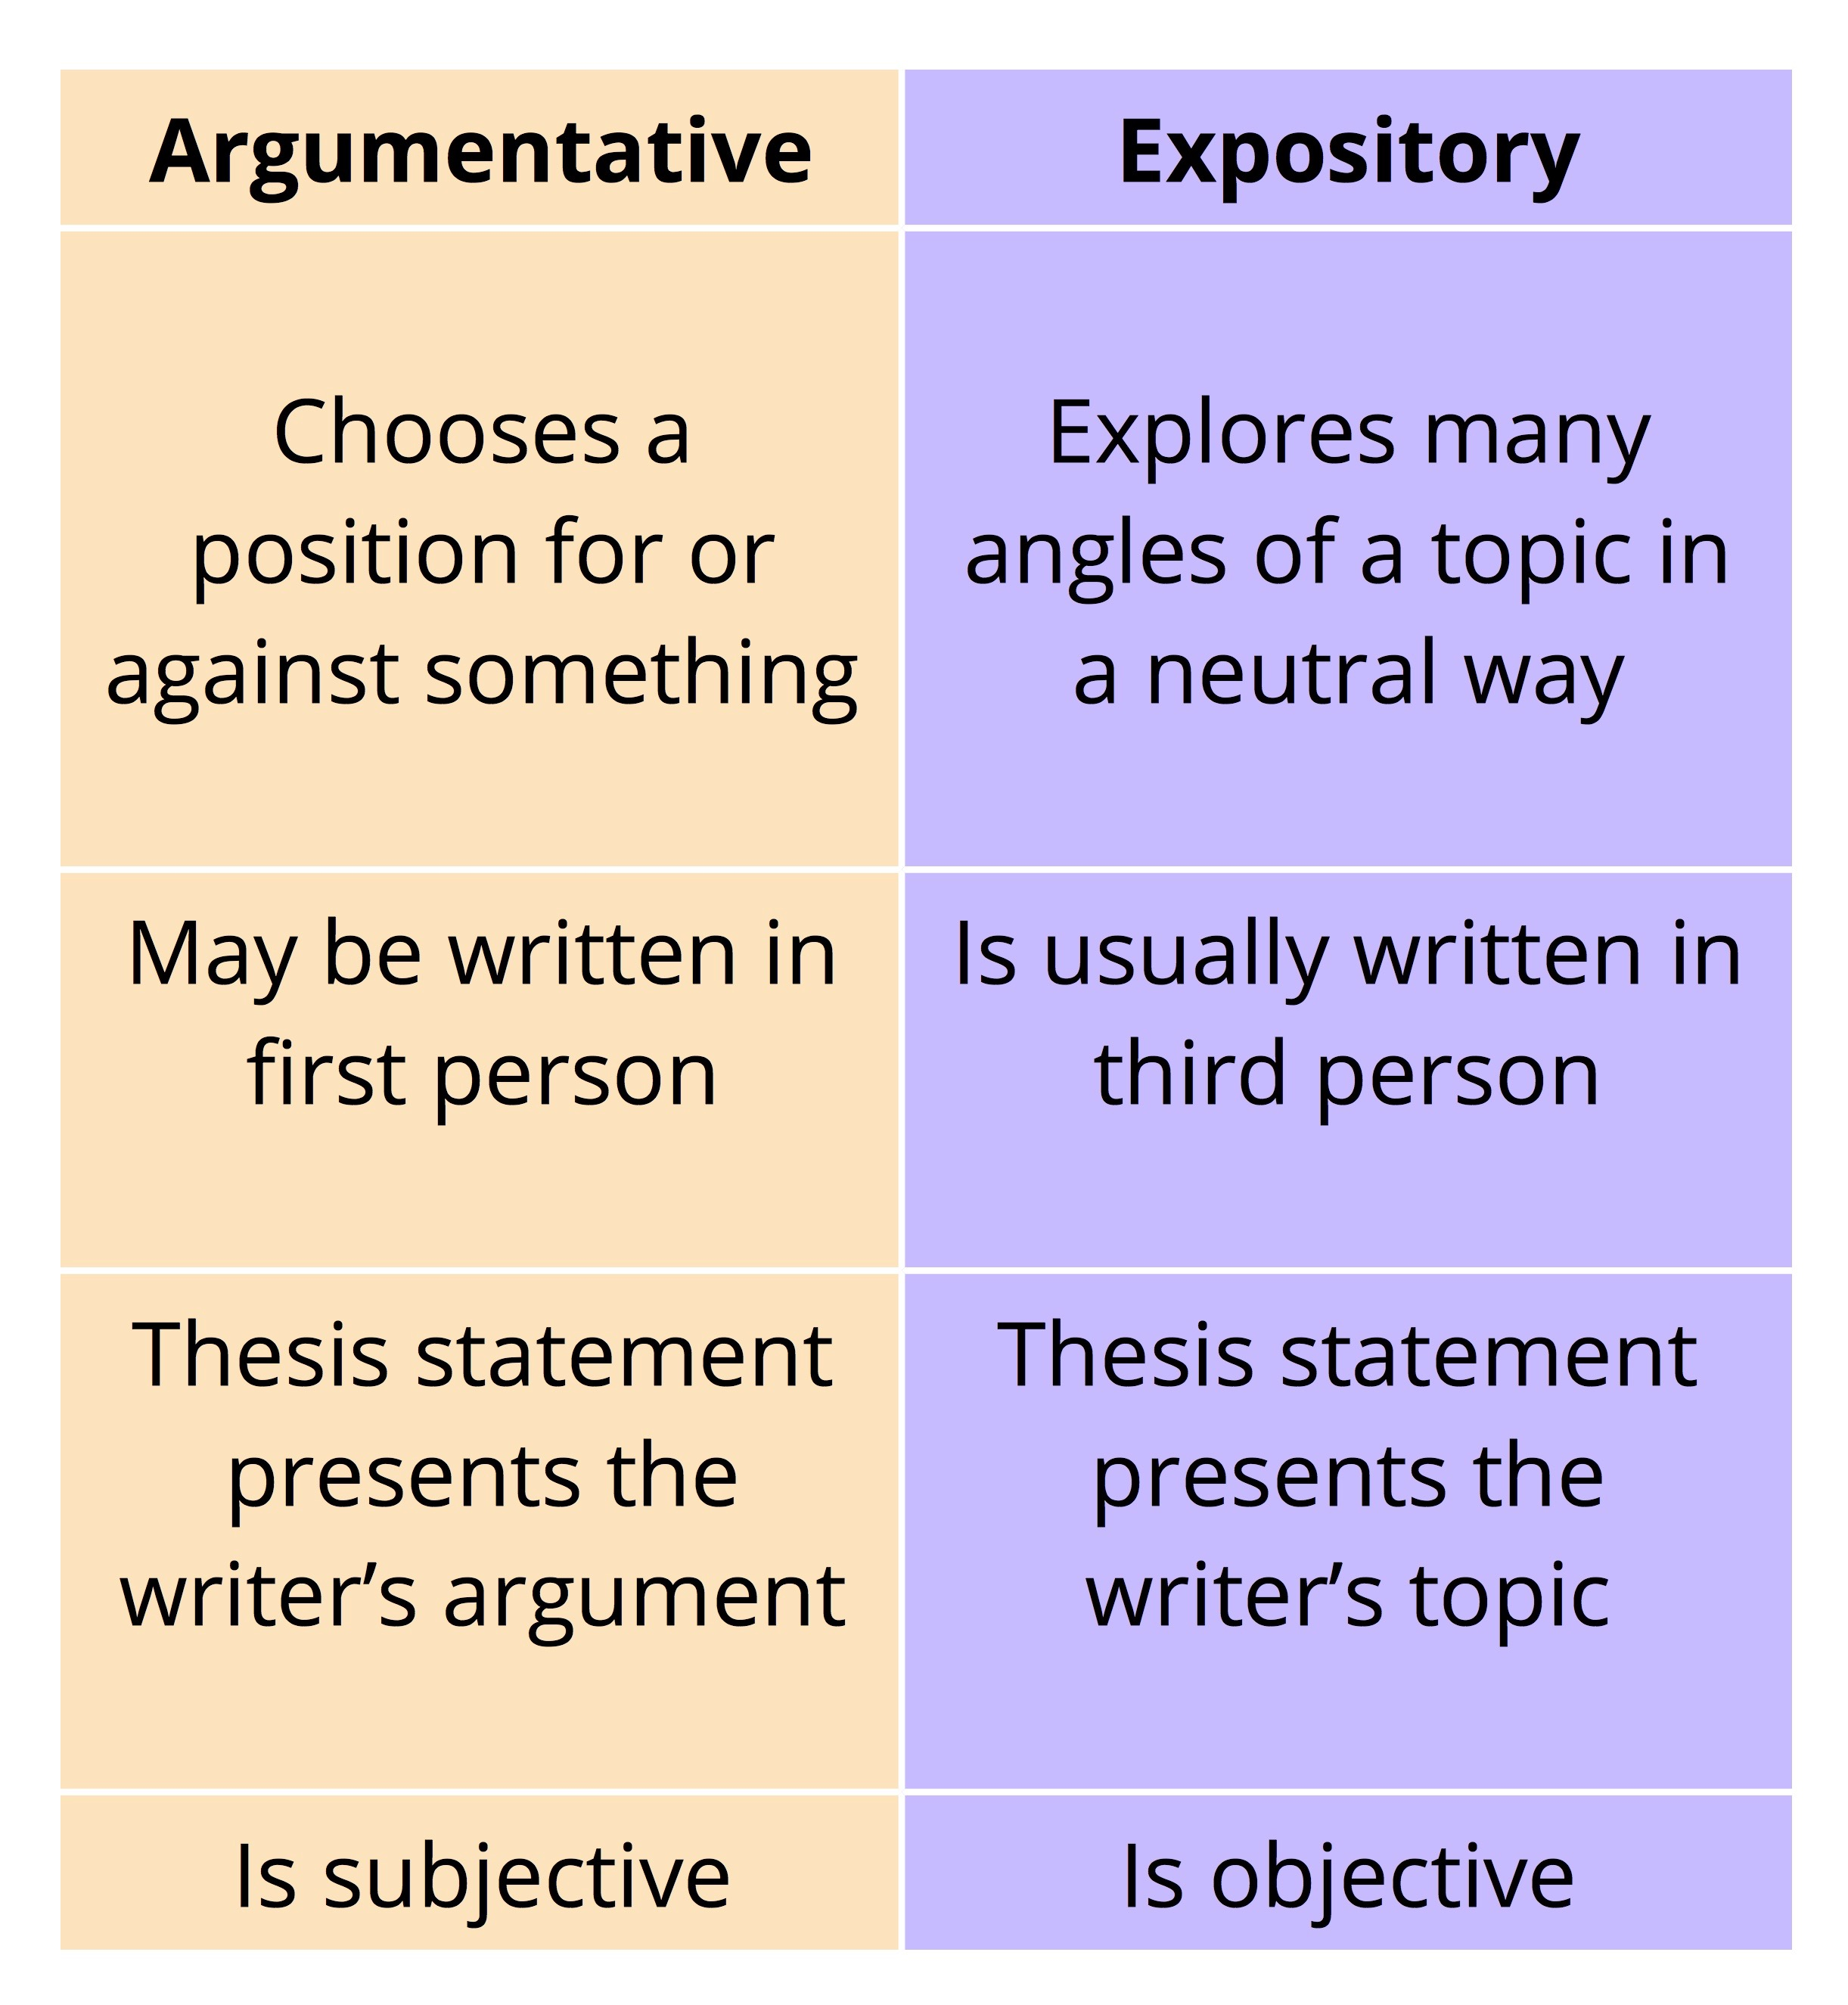 010 How To Write Anpository Essay Tigers Start Argumentative Conclusion The Differences Between And E Body Paragraph Introductionampleamples Thesis Remarkable An Expository 3rd Grade 5th Pdf Full